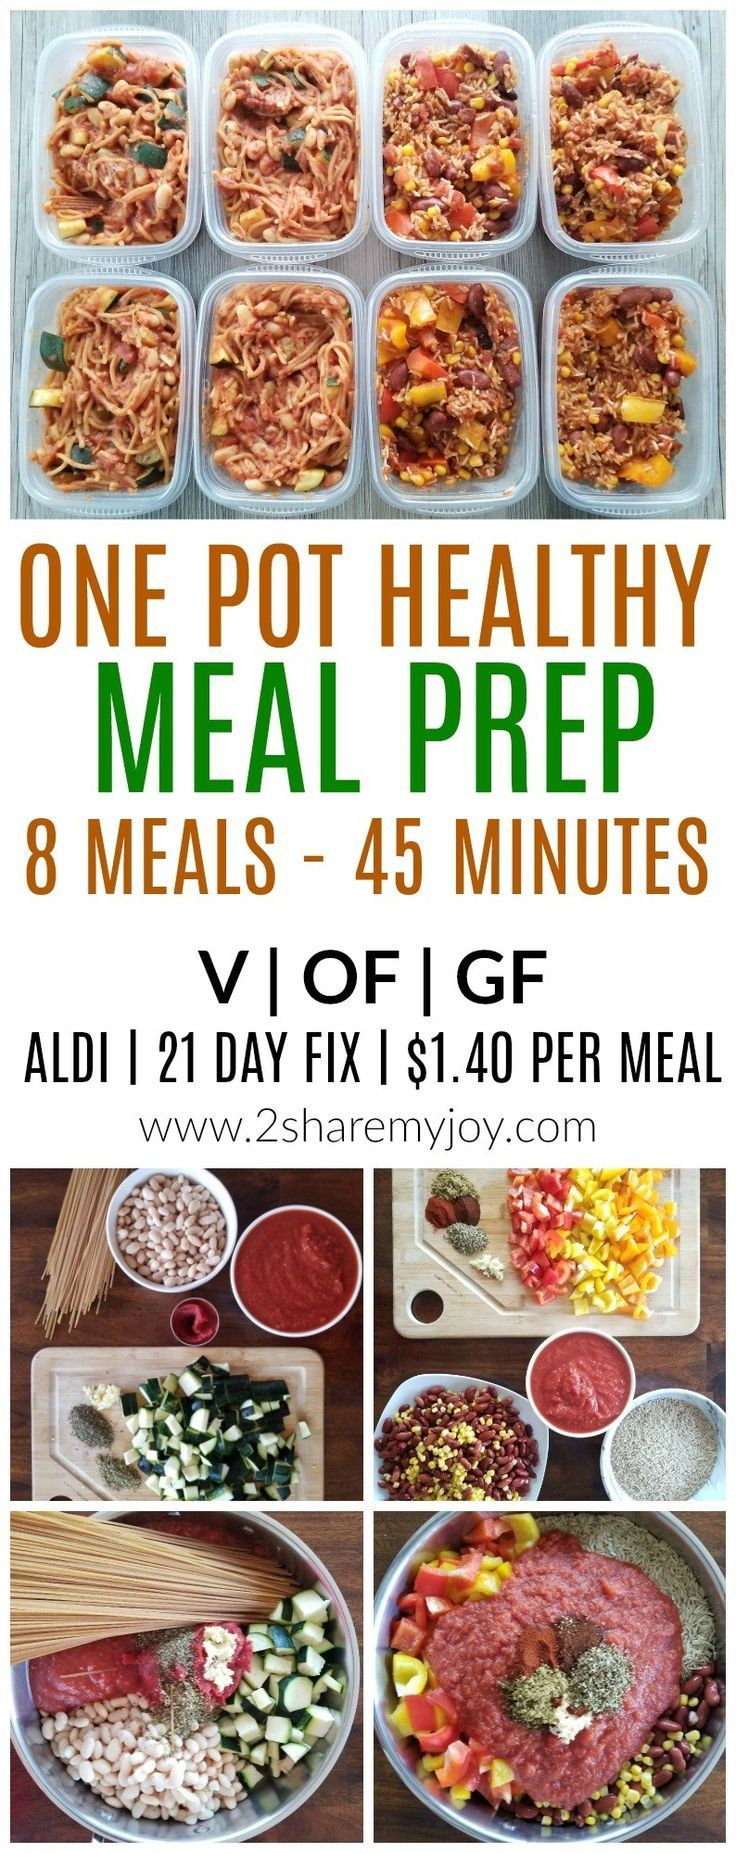 Vegan Meal Prep On A Budget : 8 Meals under 45 Minutes images